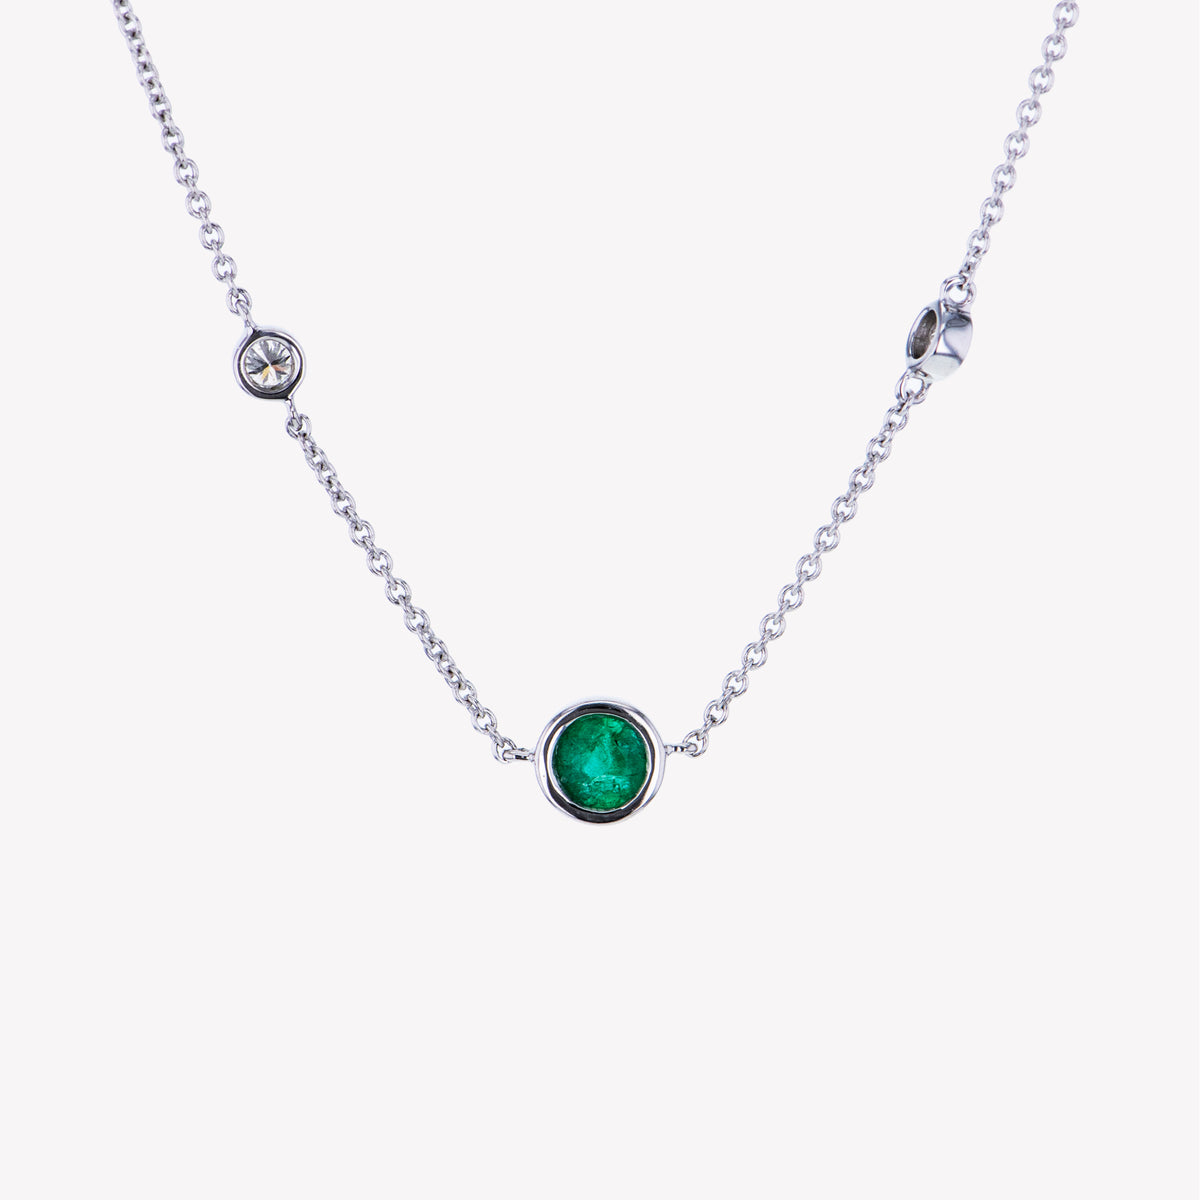 18K W/G Emerald Diamond Pendant With Chain